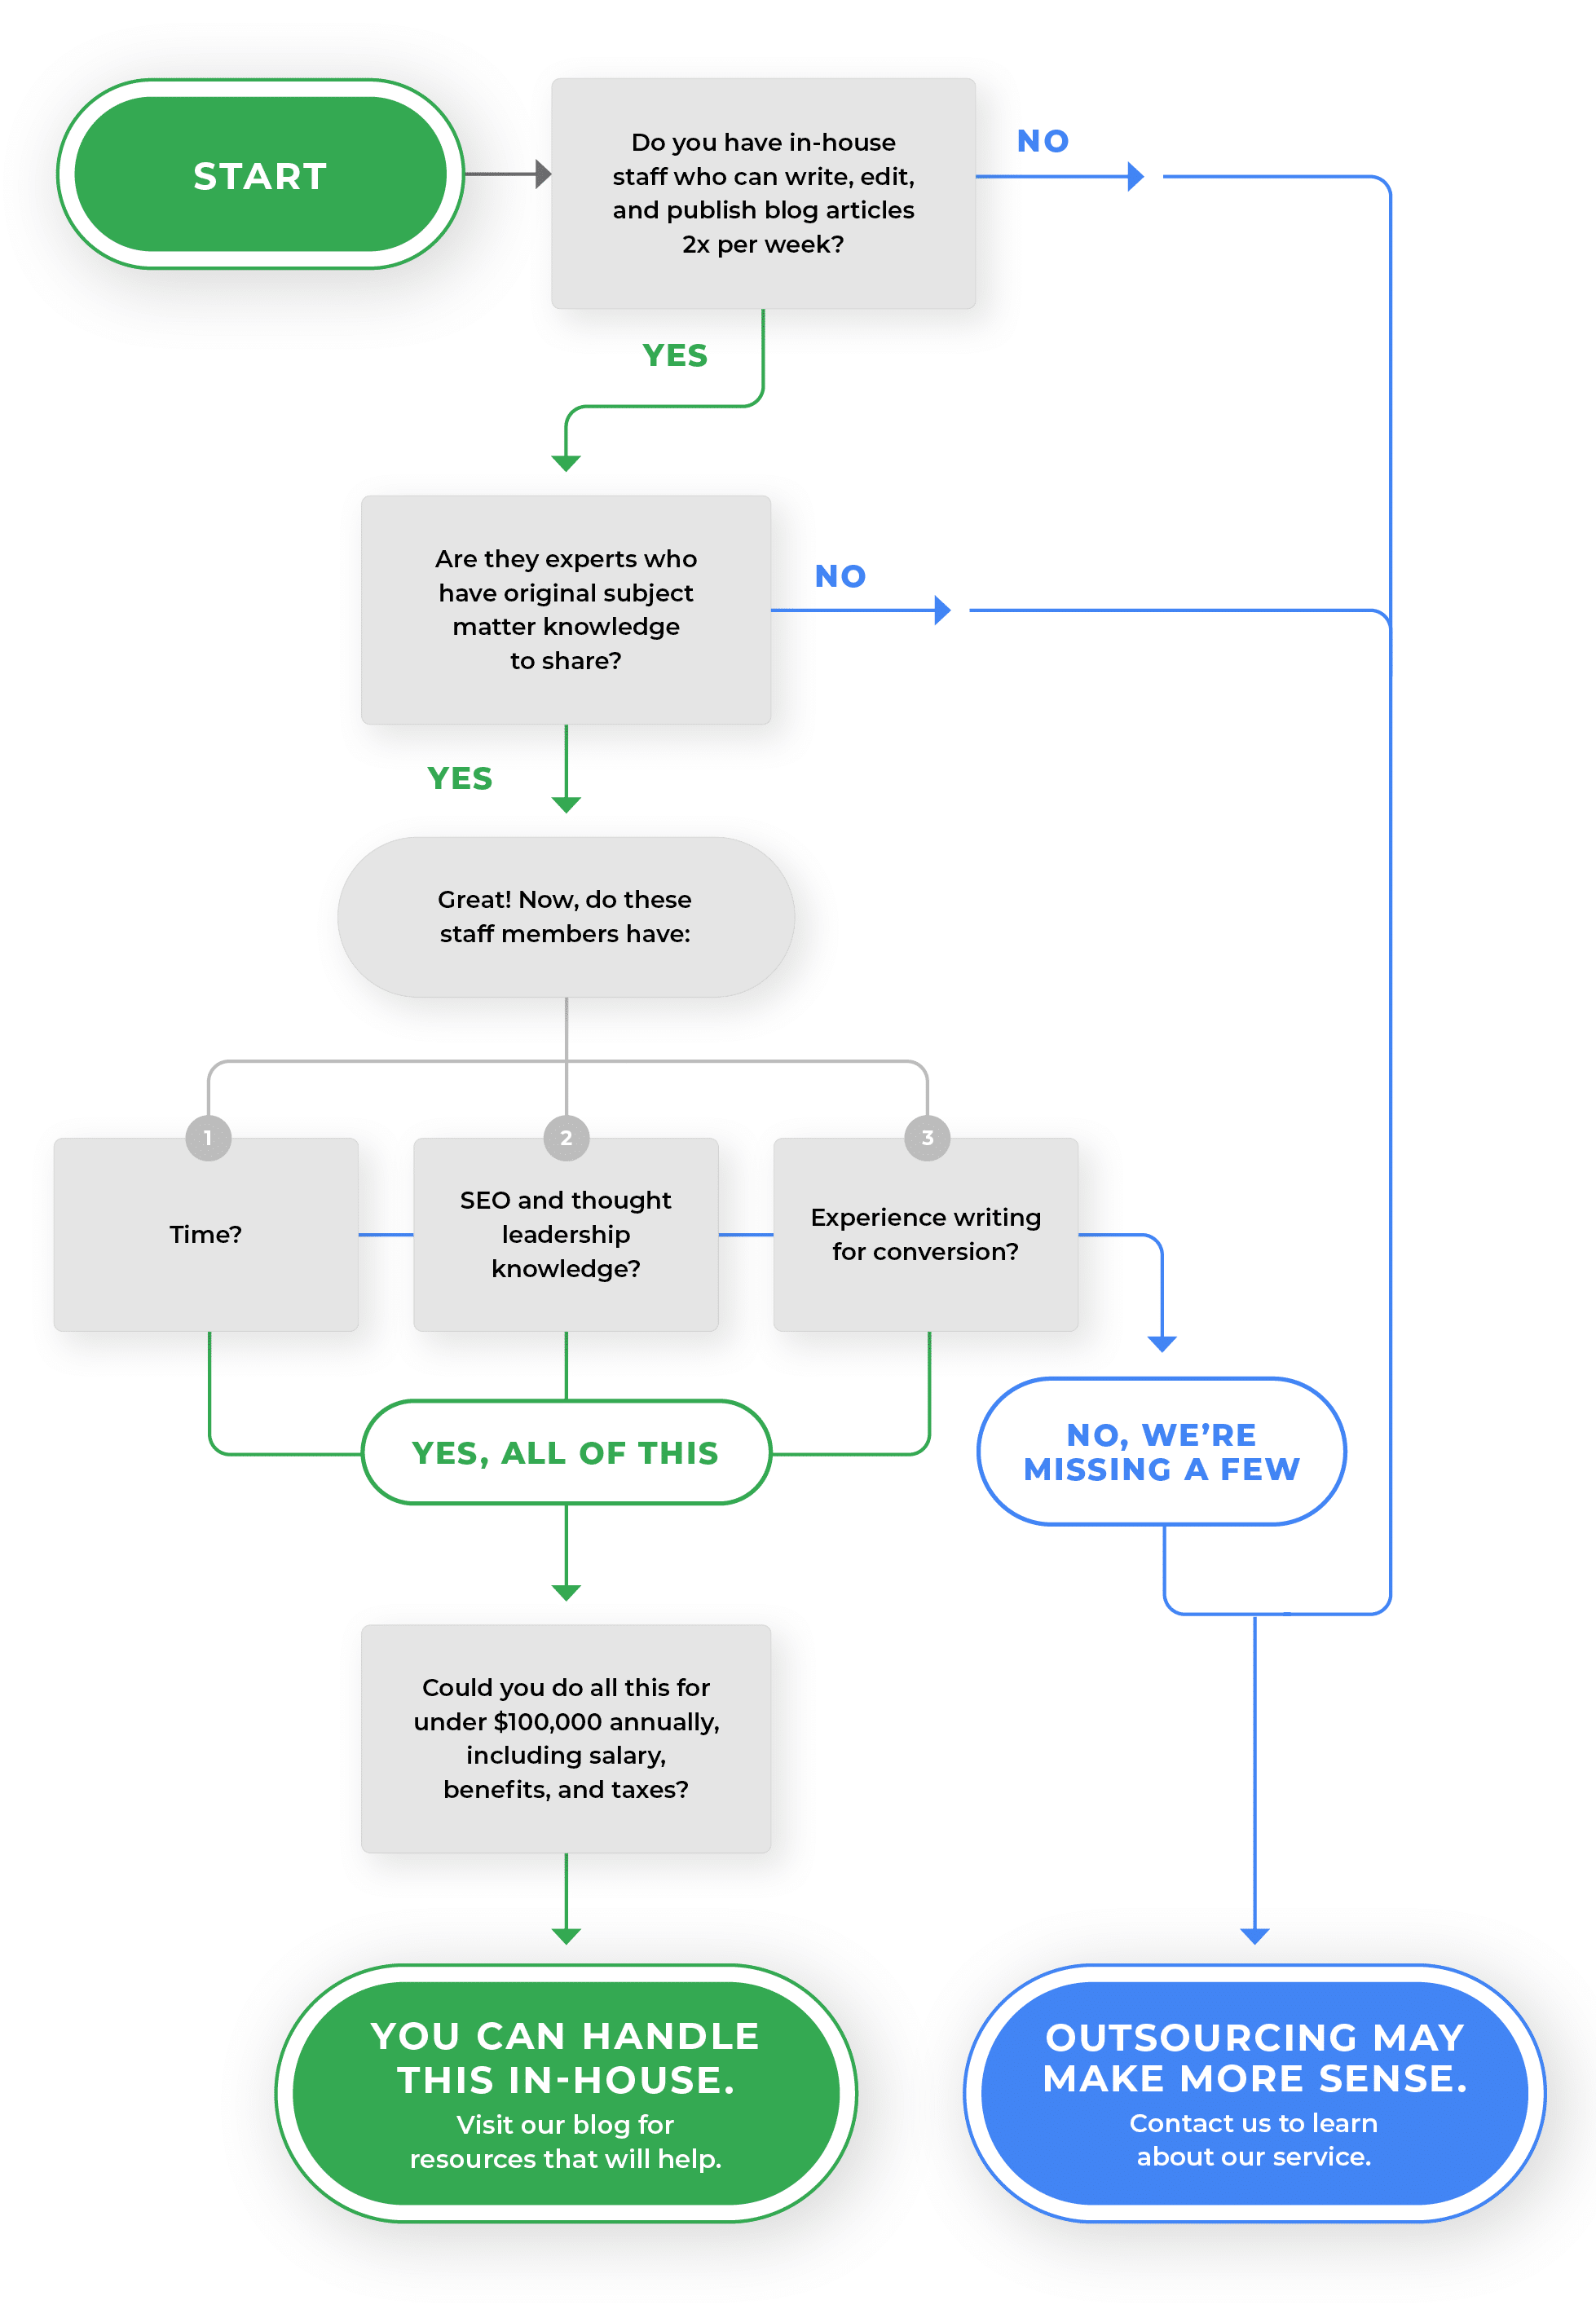 Decision flow chart on outsourcing content marketing or not.